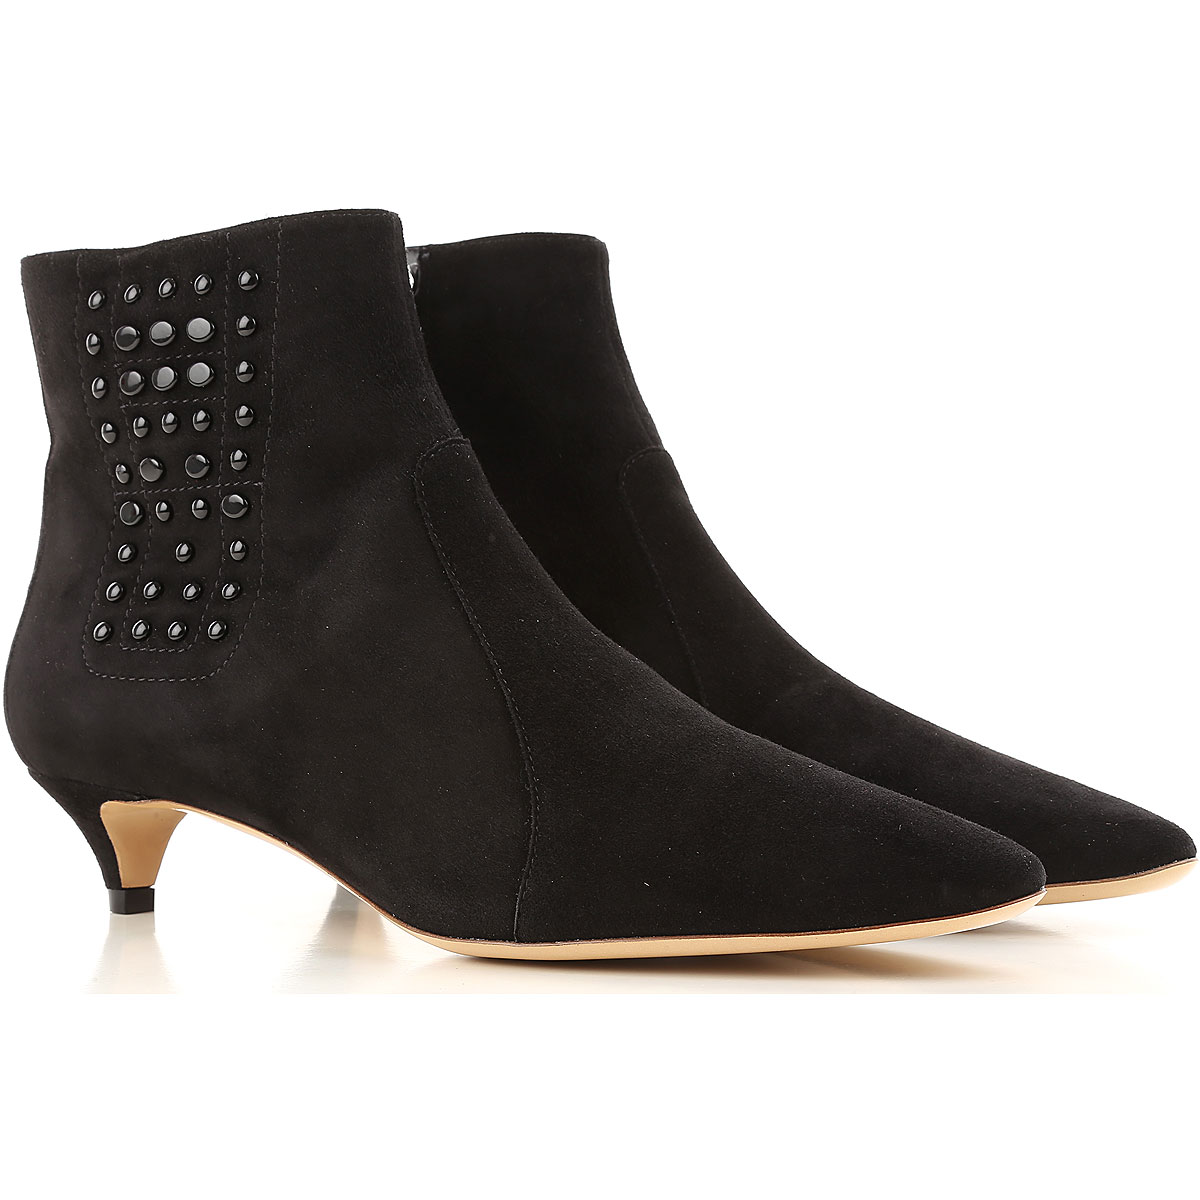 Tods Boots for Women, Booties On Sale, Black, suede, 2019, 6 6.5